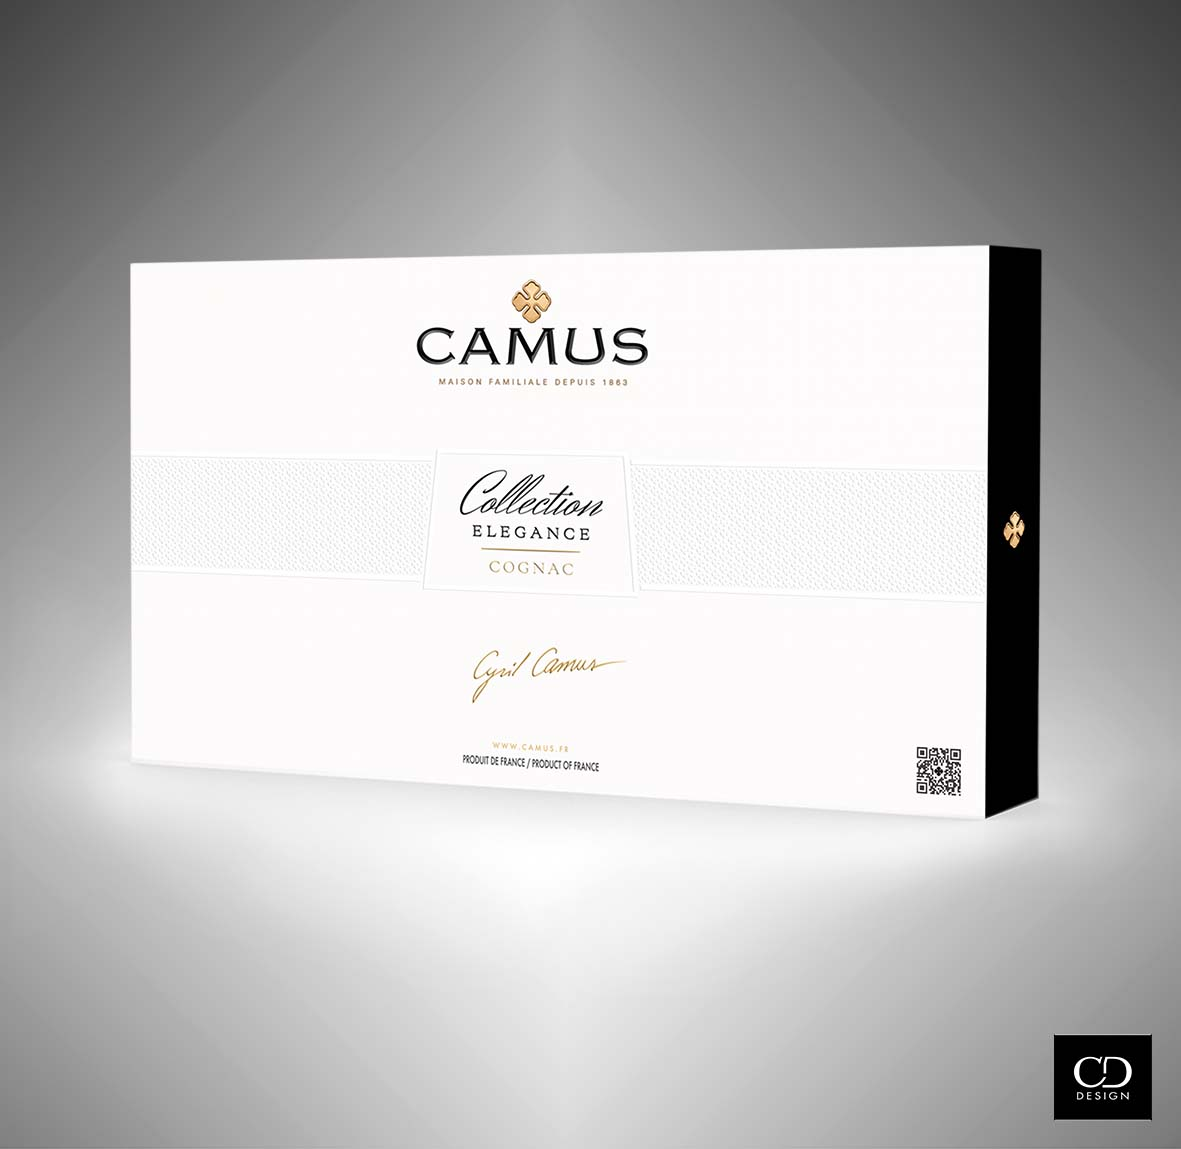 Camus Collection Elégance